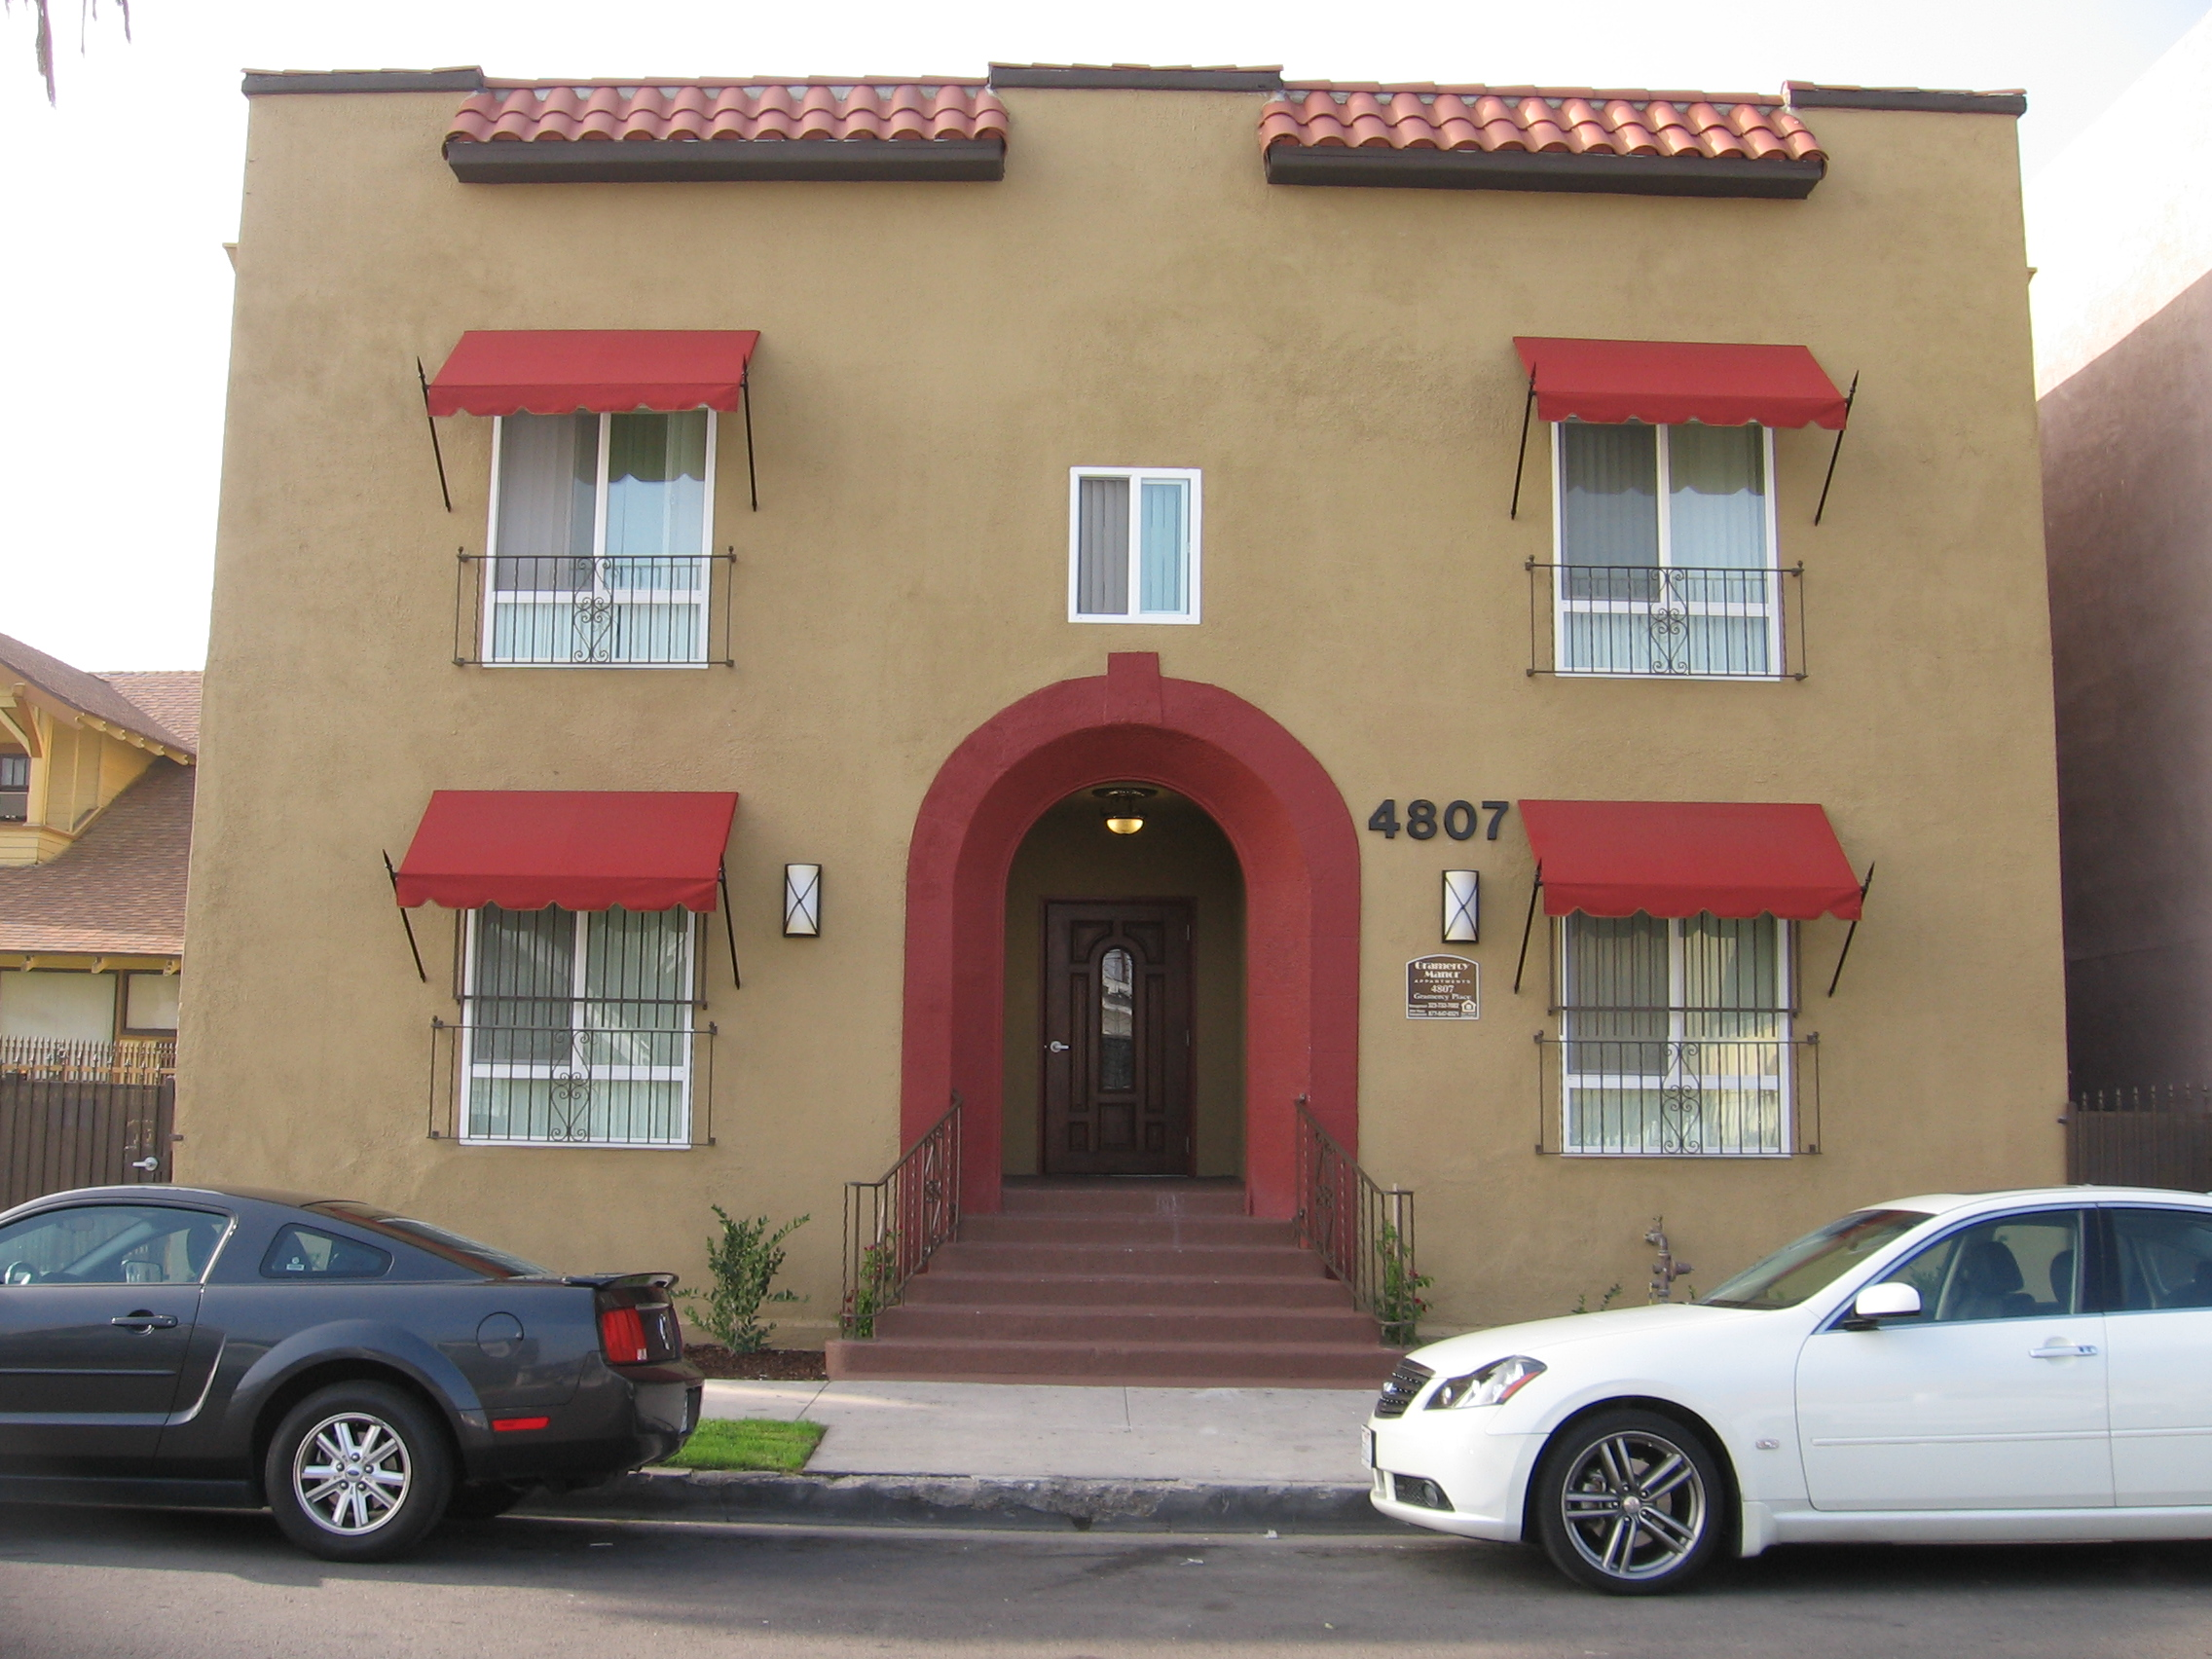 Front view of a light brown two story building, four windows with red shade and mini iron security bars, white outdoor light on each side of the entrance, building number on the right side, building name and address sign on the right side, six burgundy st